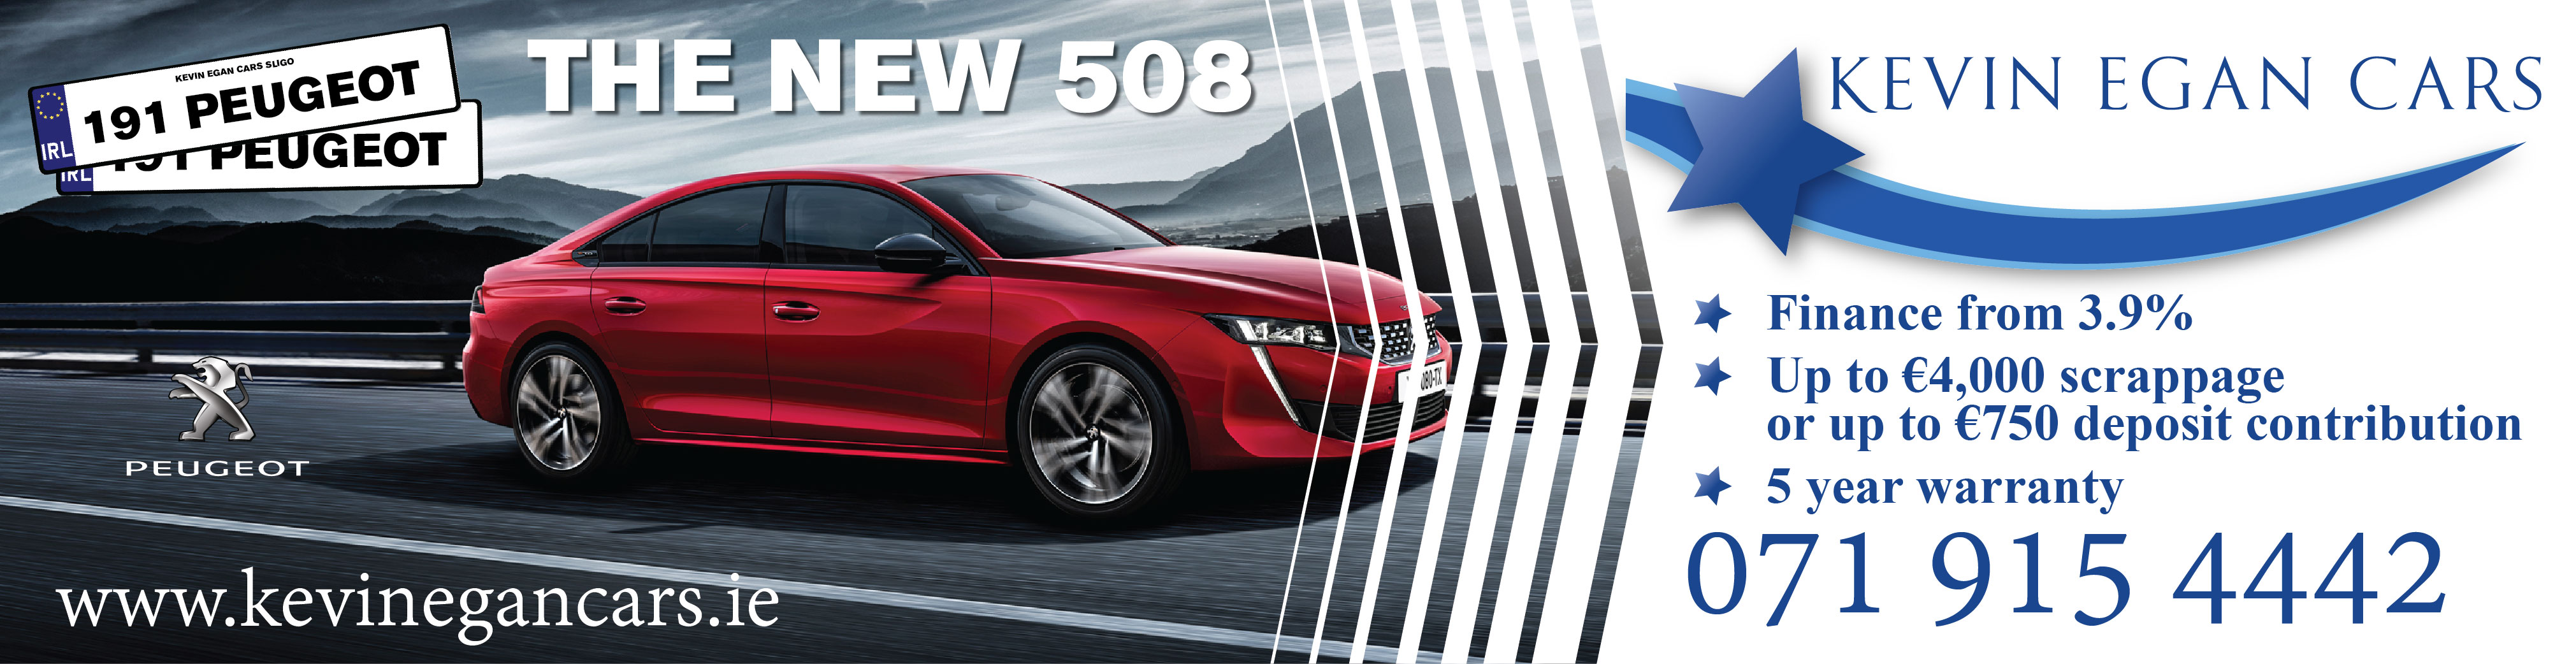 801ef77639 ... believe me it s well worth it – Peugeot Dealers will be hosting VIP  previews from now until November 18